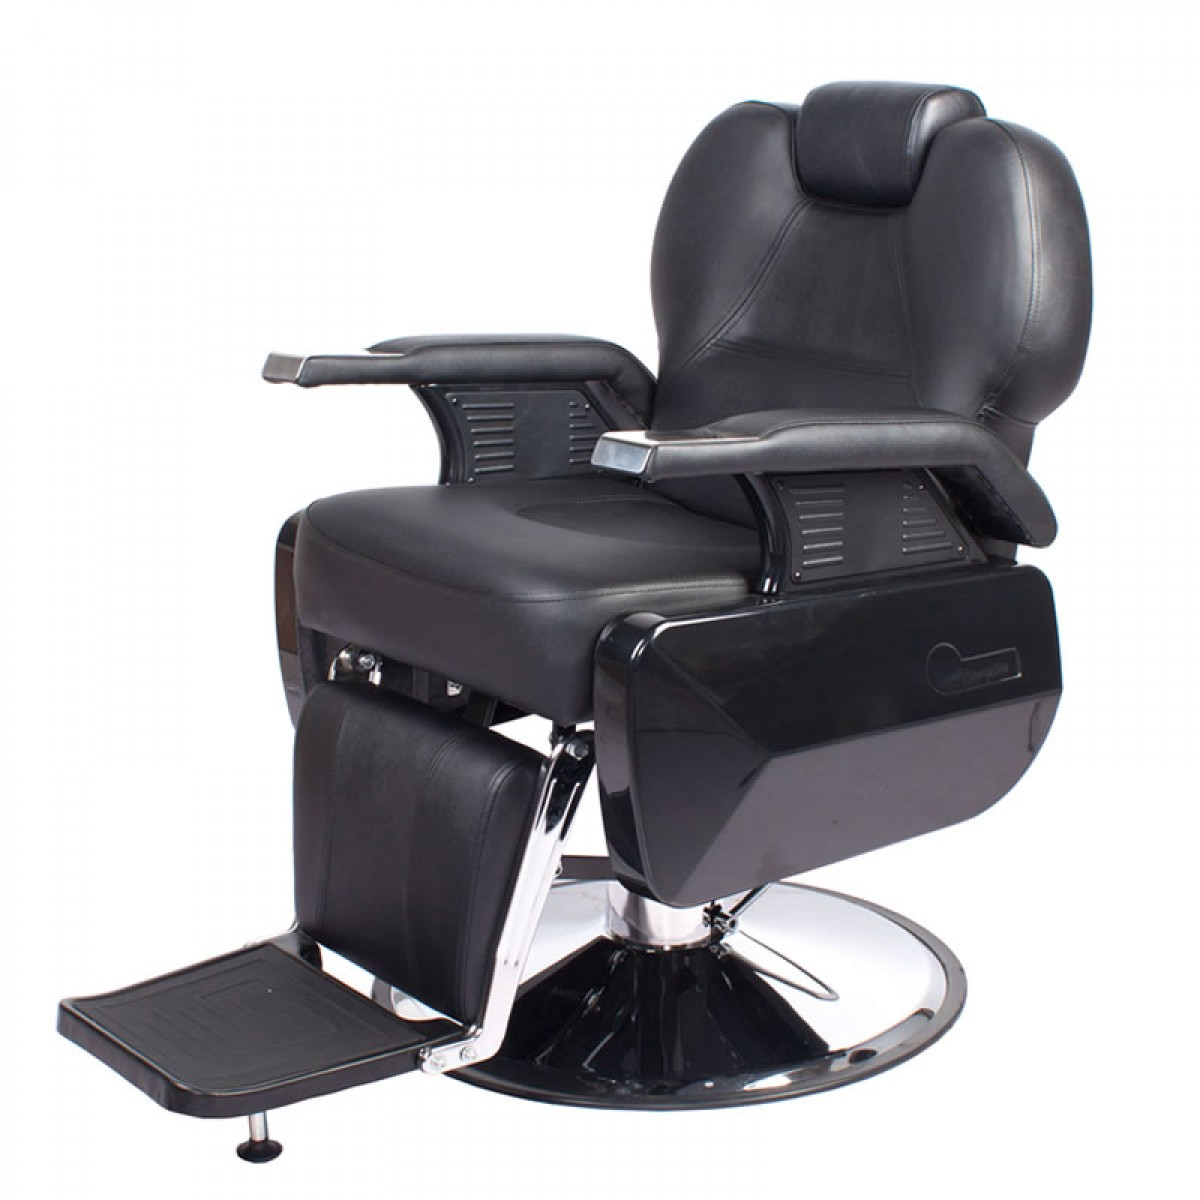 """CAVALIER"" Barber Chair - most economic and lowest price guaranteed"